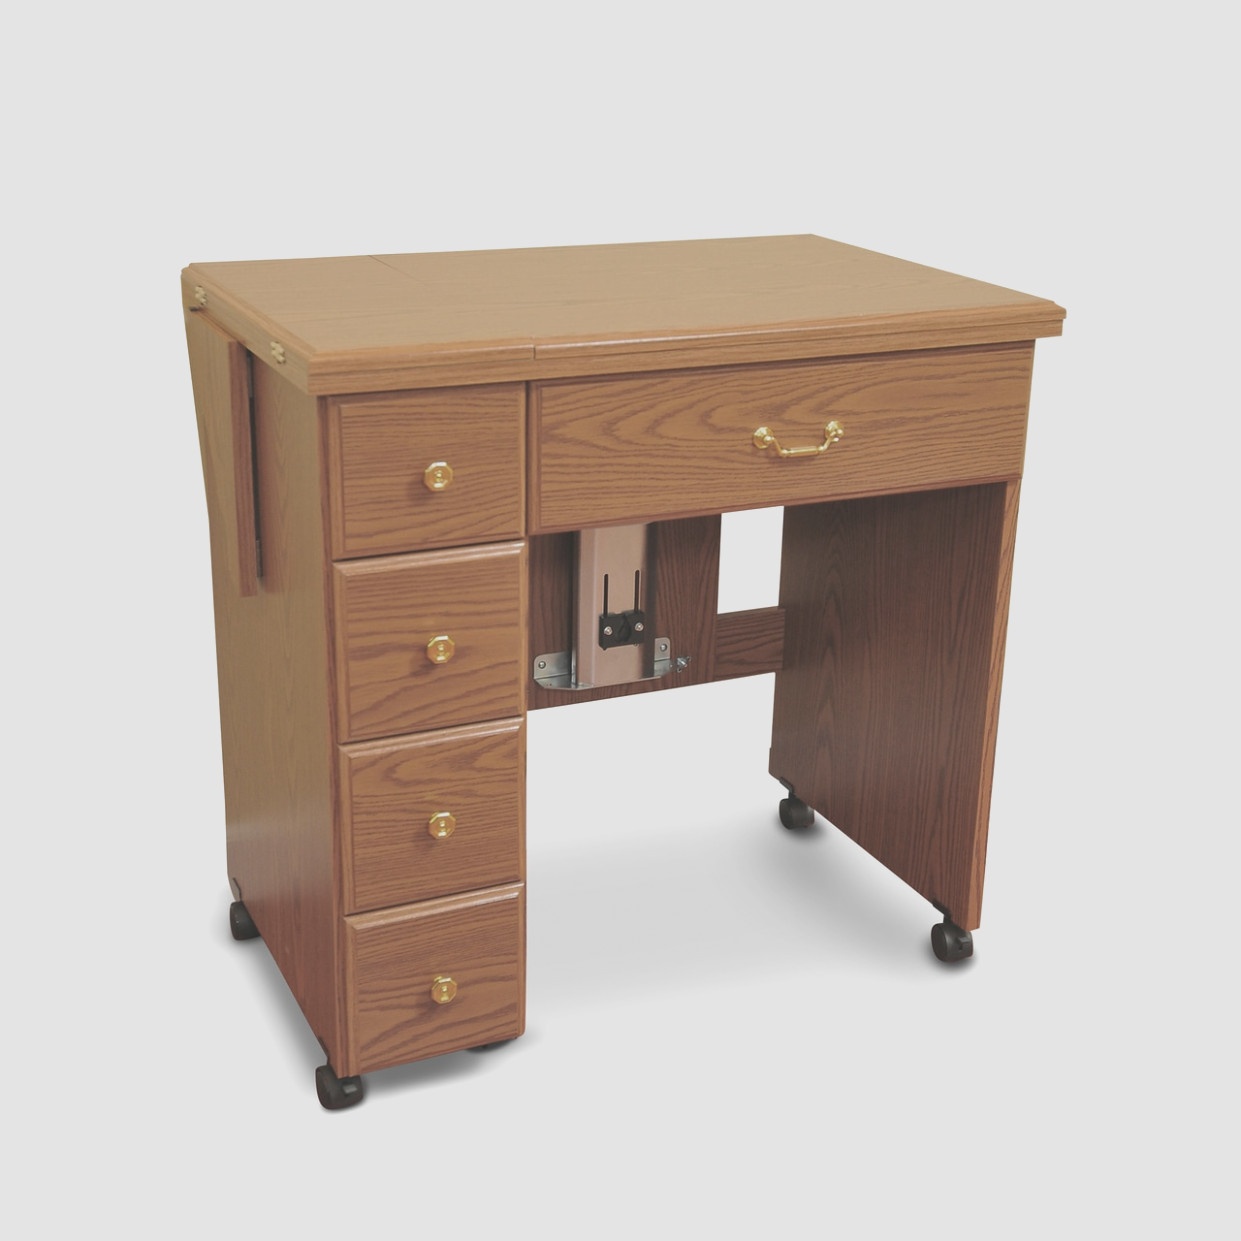 Sewing Machine Tables or Cabinets